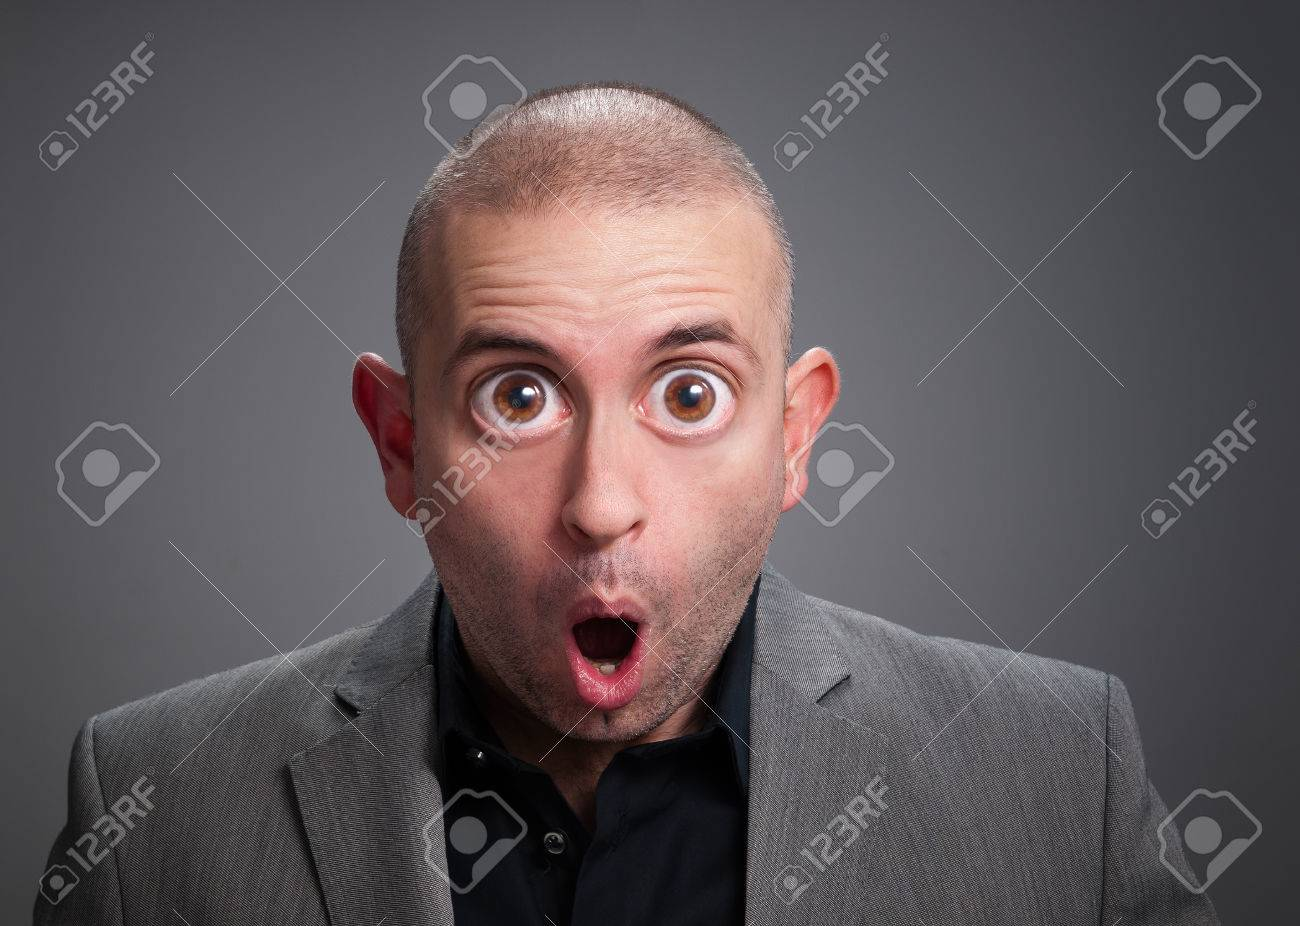 Businessman with surprise expression The photo has a digital retouching with eyes wide open - 24357272